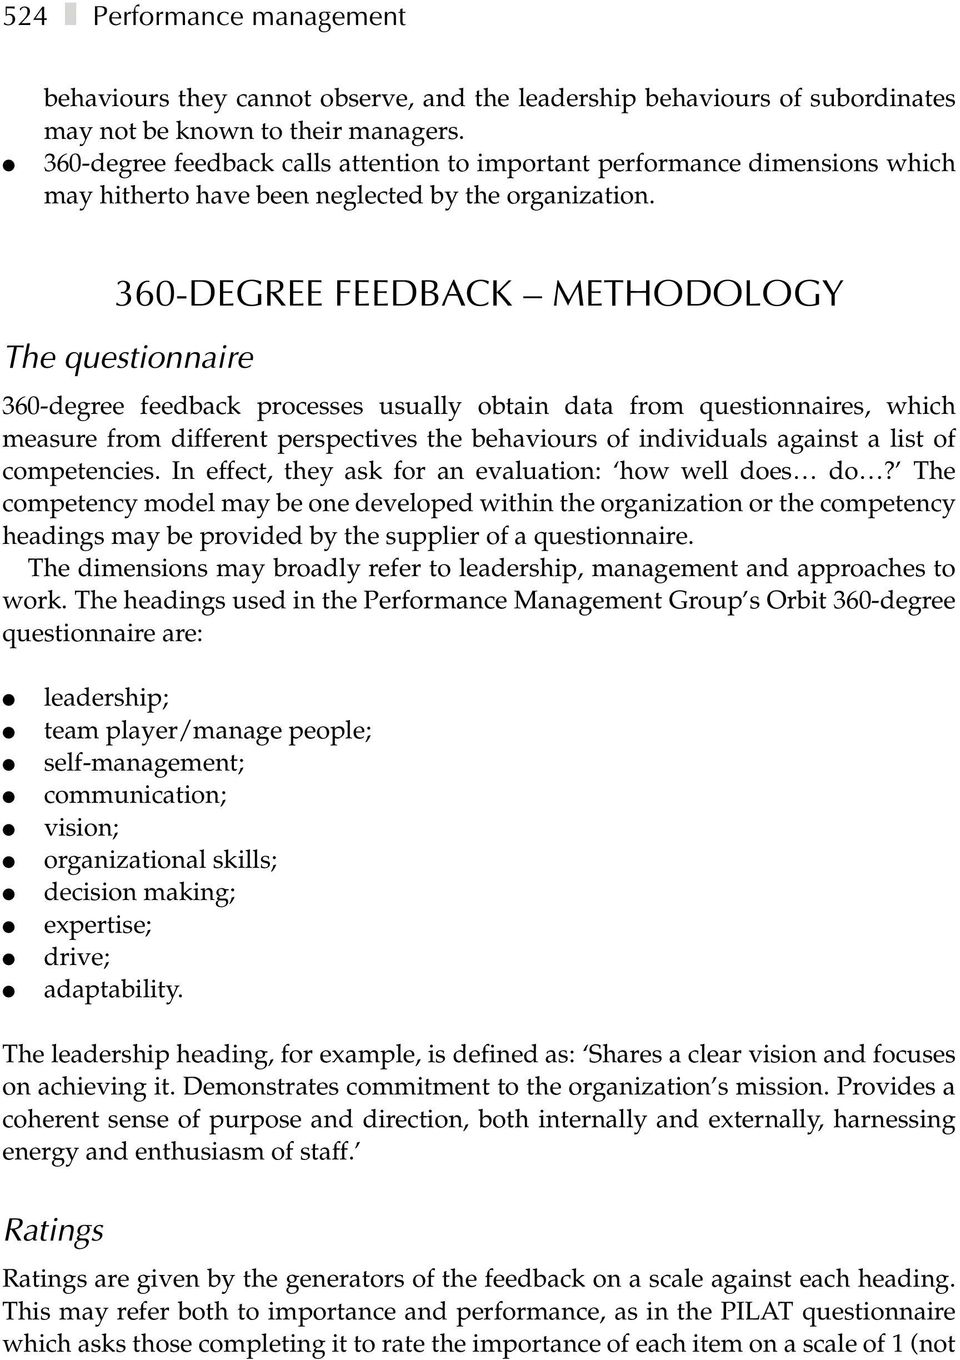 360-DEGREE FEEDBACK METHODOLOGY The questionnaire 360-degree feedback processes usually obtain data from questionnaires, which measure from different perspectives the behaviours of individuals